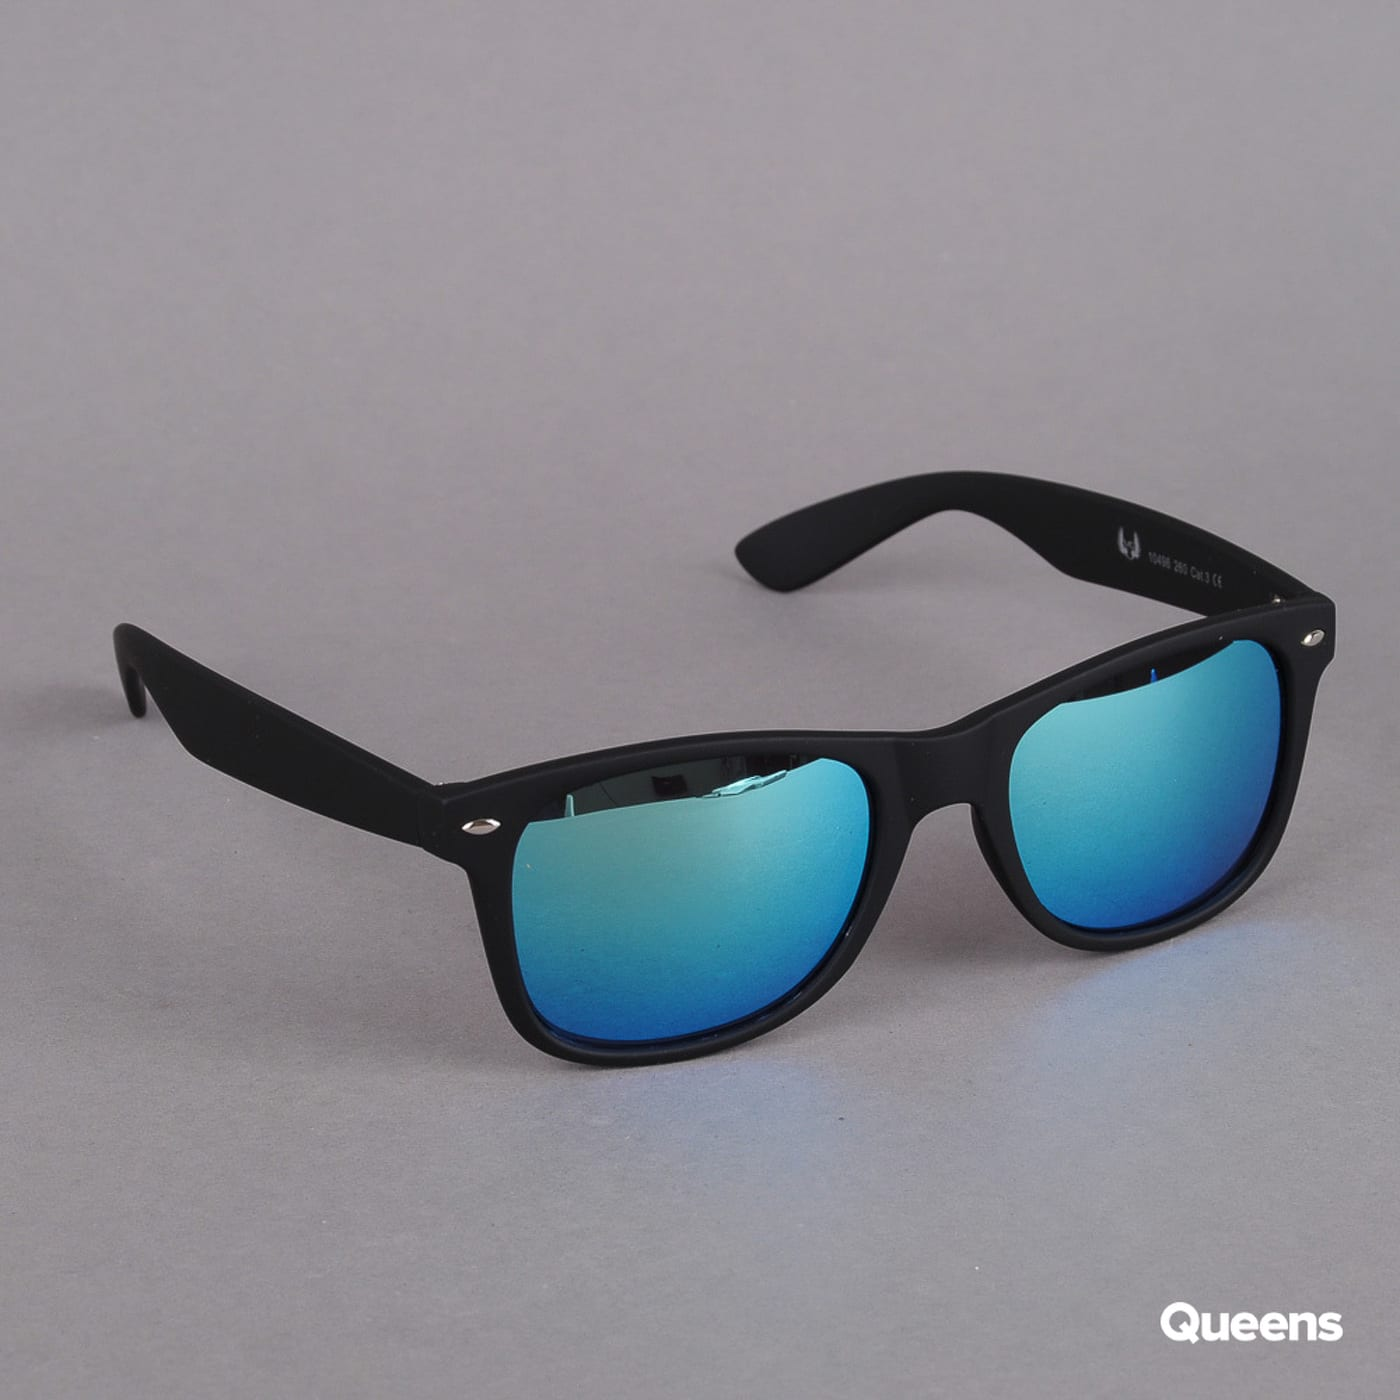 MD Sunglasses Likoma Mirror black / blue